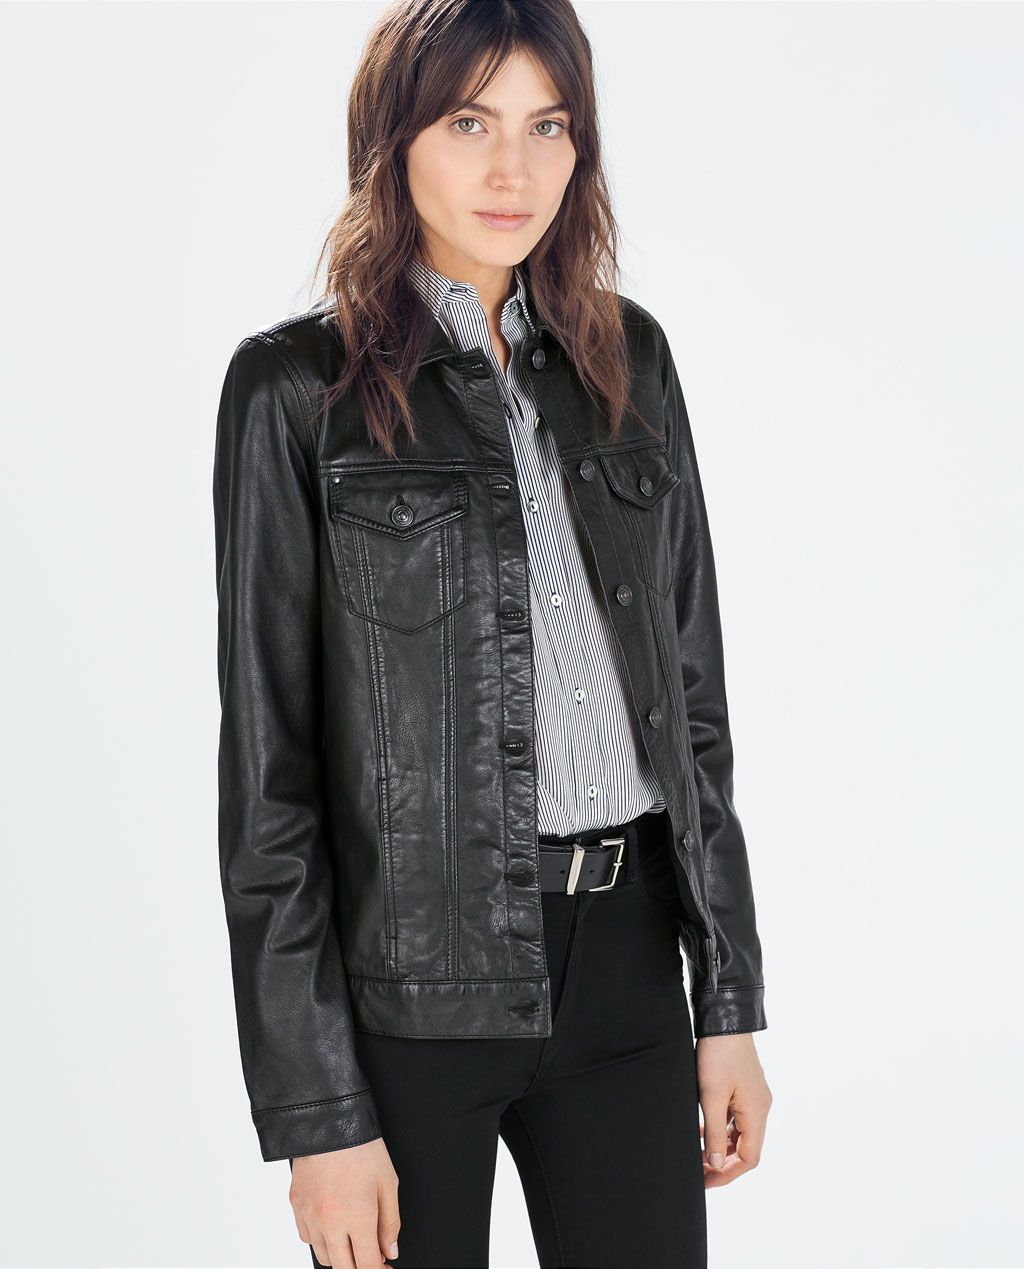 ZARA - COLLECTION AW14 - LEATHER JACKET